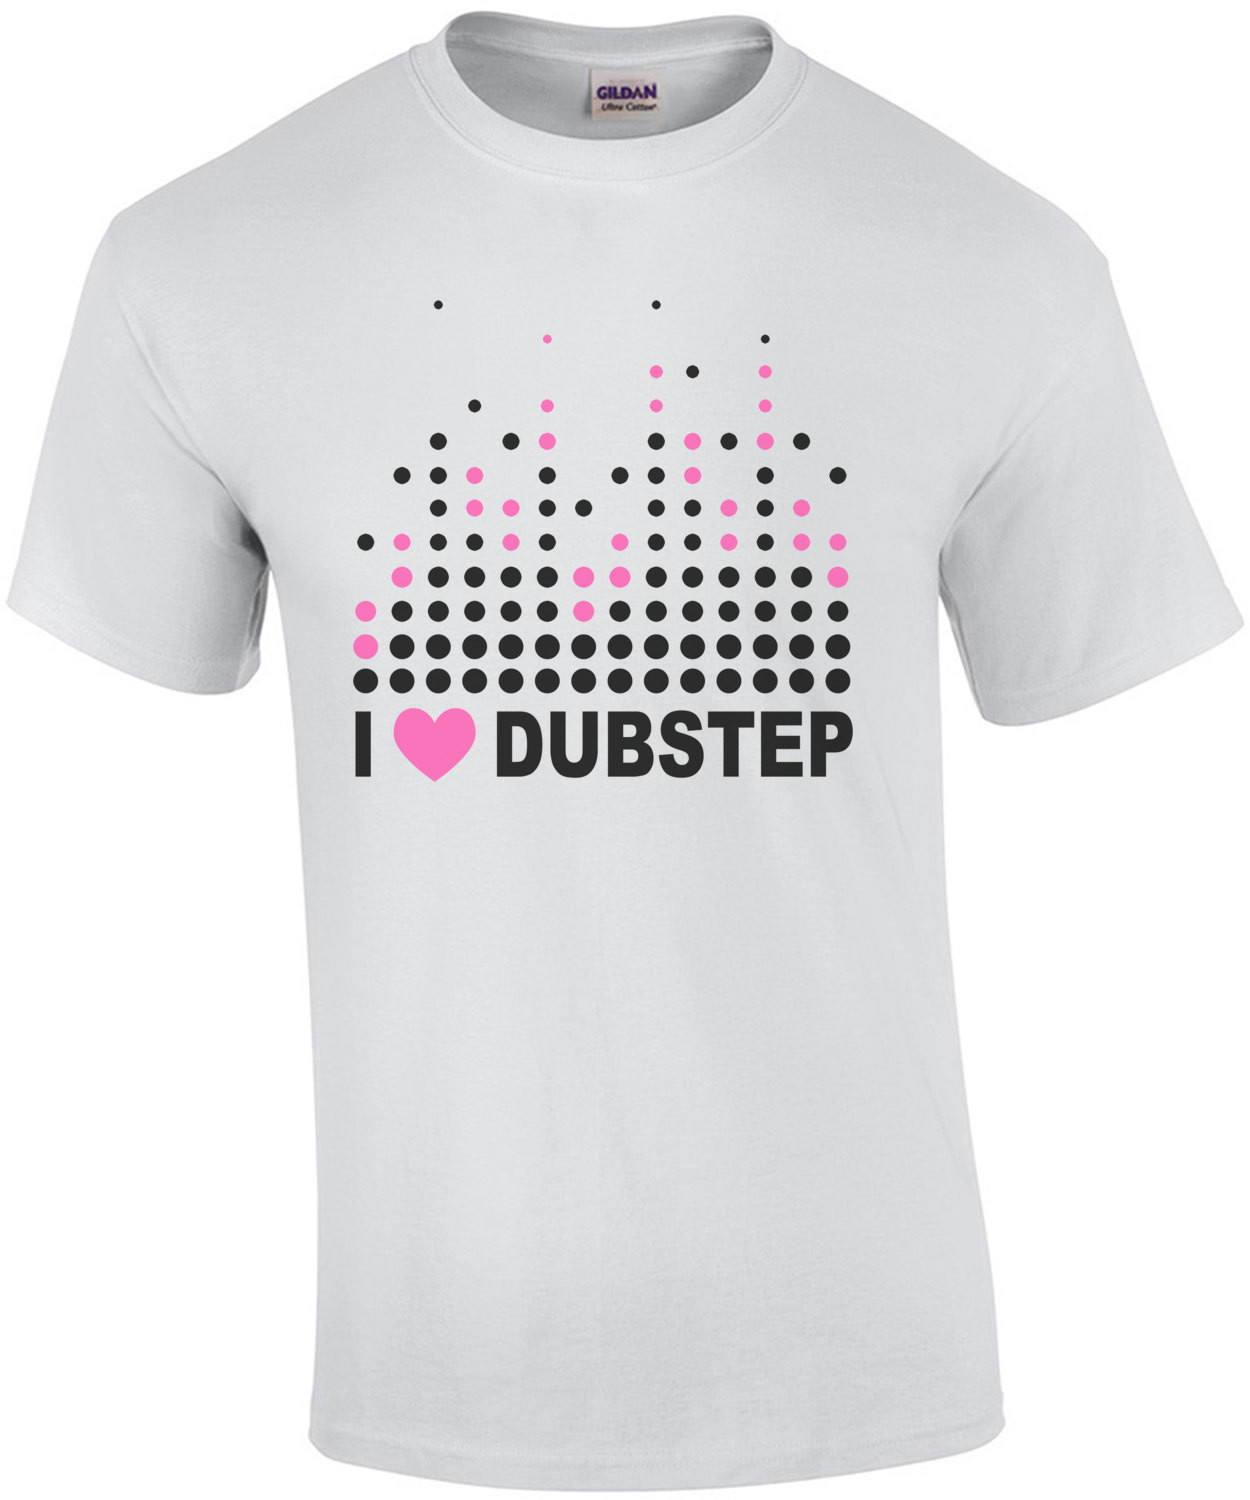 I Heart Dubstep T-Shirt